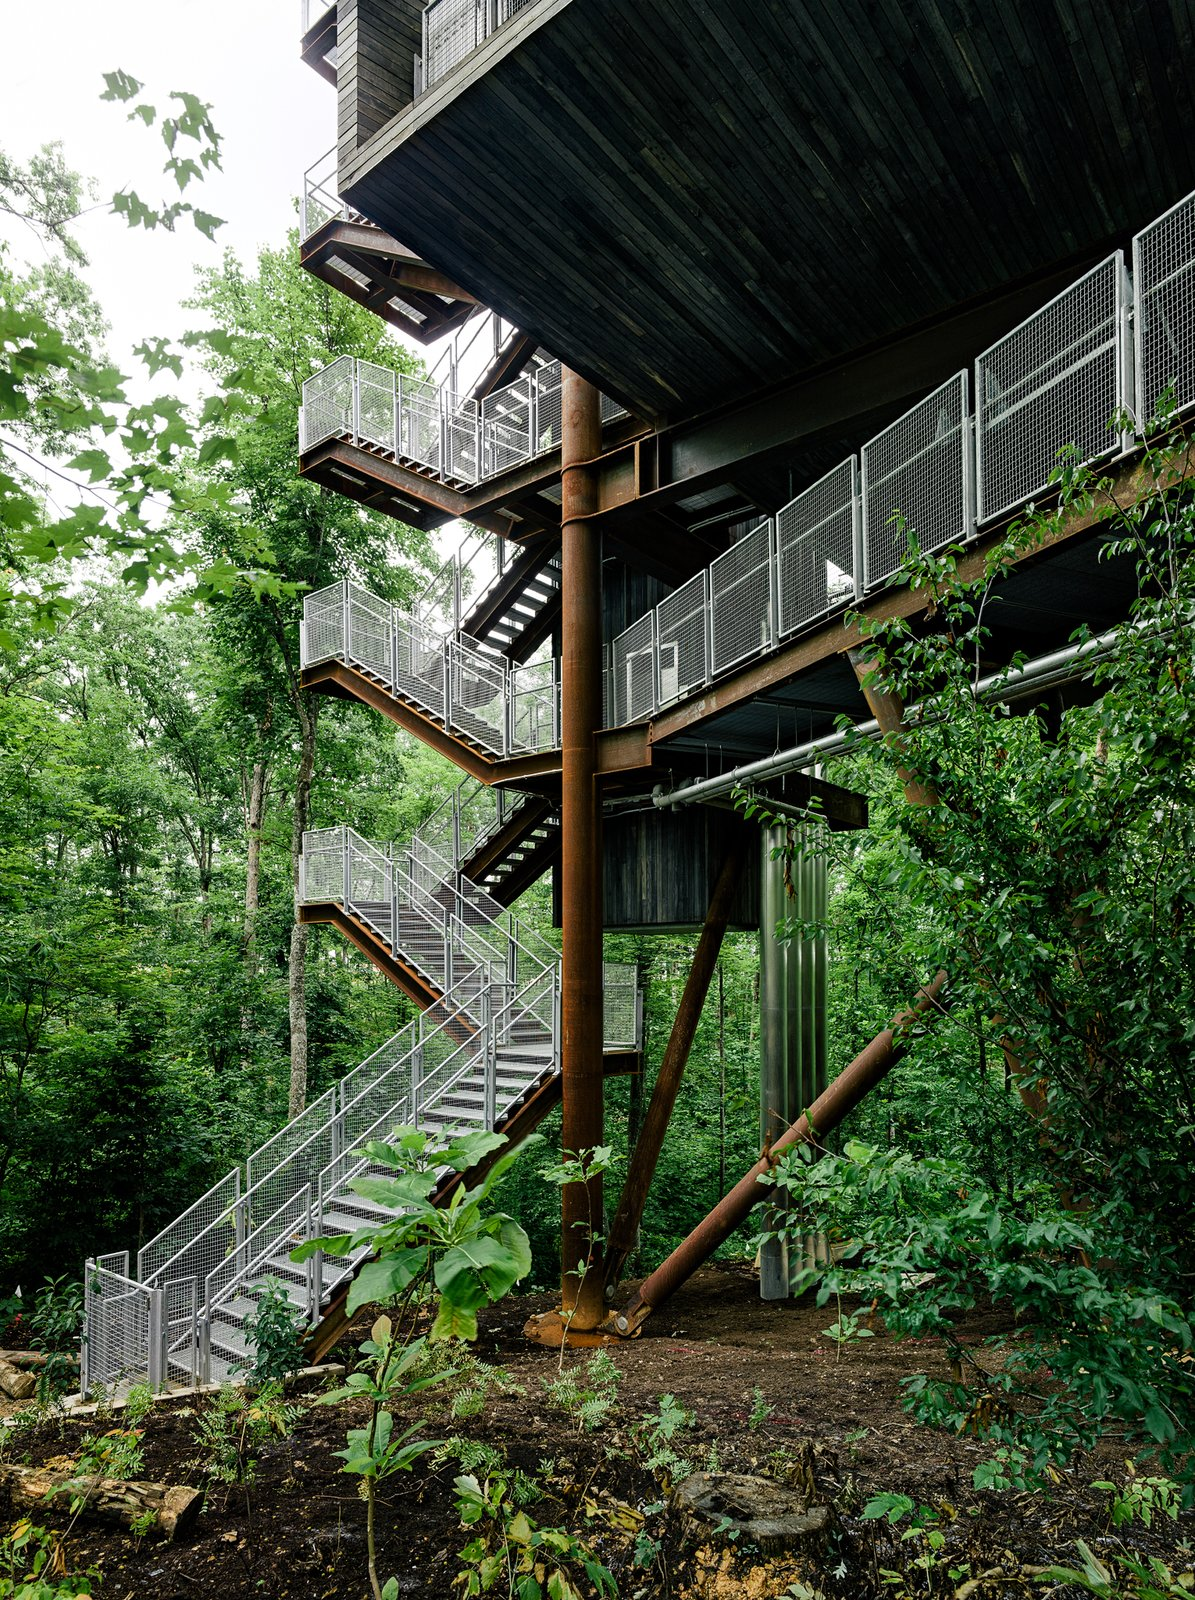 Mithun designed the tree house so that it would tread lightly on the land. The firm originally considered prefabricating the entire structure offsite but, in the research process, concluded that craning large modules into place would potentially harm the canopy. A combination of a bolted-together prefab structure and site-built wood housing yielded the least intrusive construction option.   The Summit Bechtel Reserve is located in West Virginia's coal mining country. The architects looked to the local structures—bridges, mining apparatus, and other industrial buildings—to inform the tree house's design. A 166-ton Cor-Ten steel megastructure supports the 125-foot-tall building. The use of regionally appropriate materials, like steel and black locust wood, was important to the architects. Tagged: Exterior and Treehouse Building Type.  Sustainability Treehouse by Diana Budds